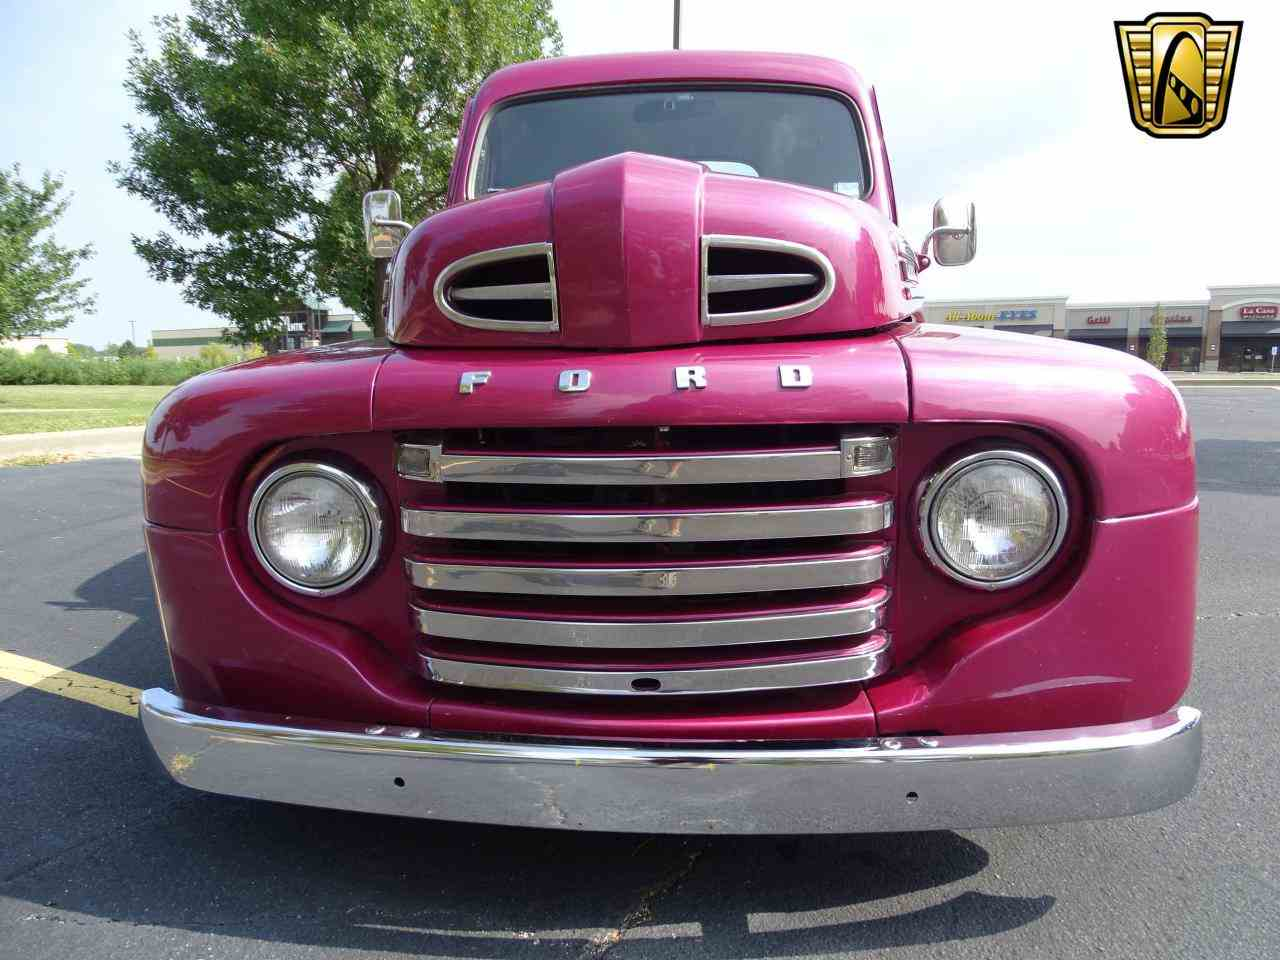 Large Picture of Classic '50 Ford Pickup - $23,995.00 Offered by Gateway Classic Cars - St. Louis - LVNS